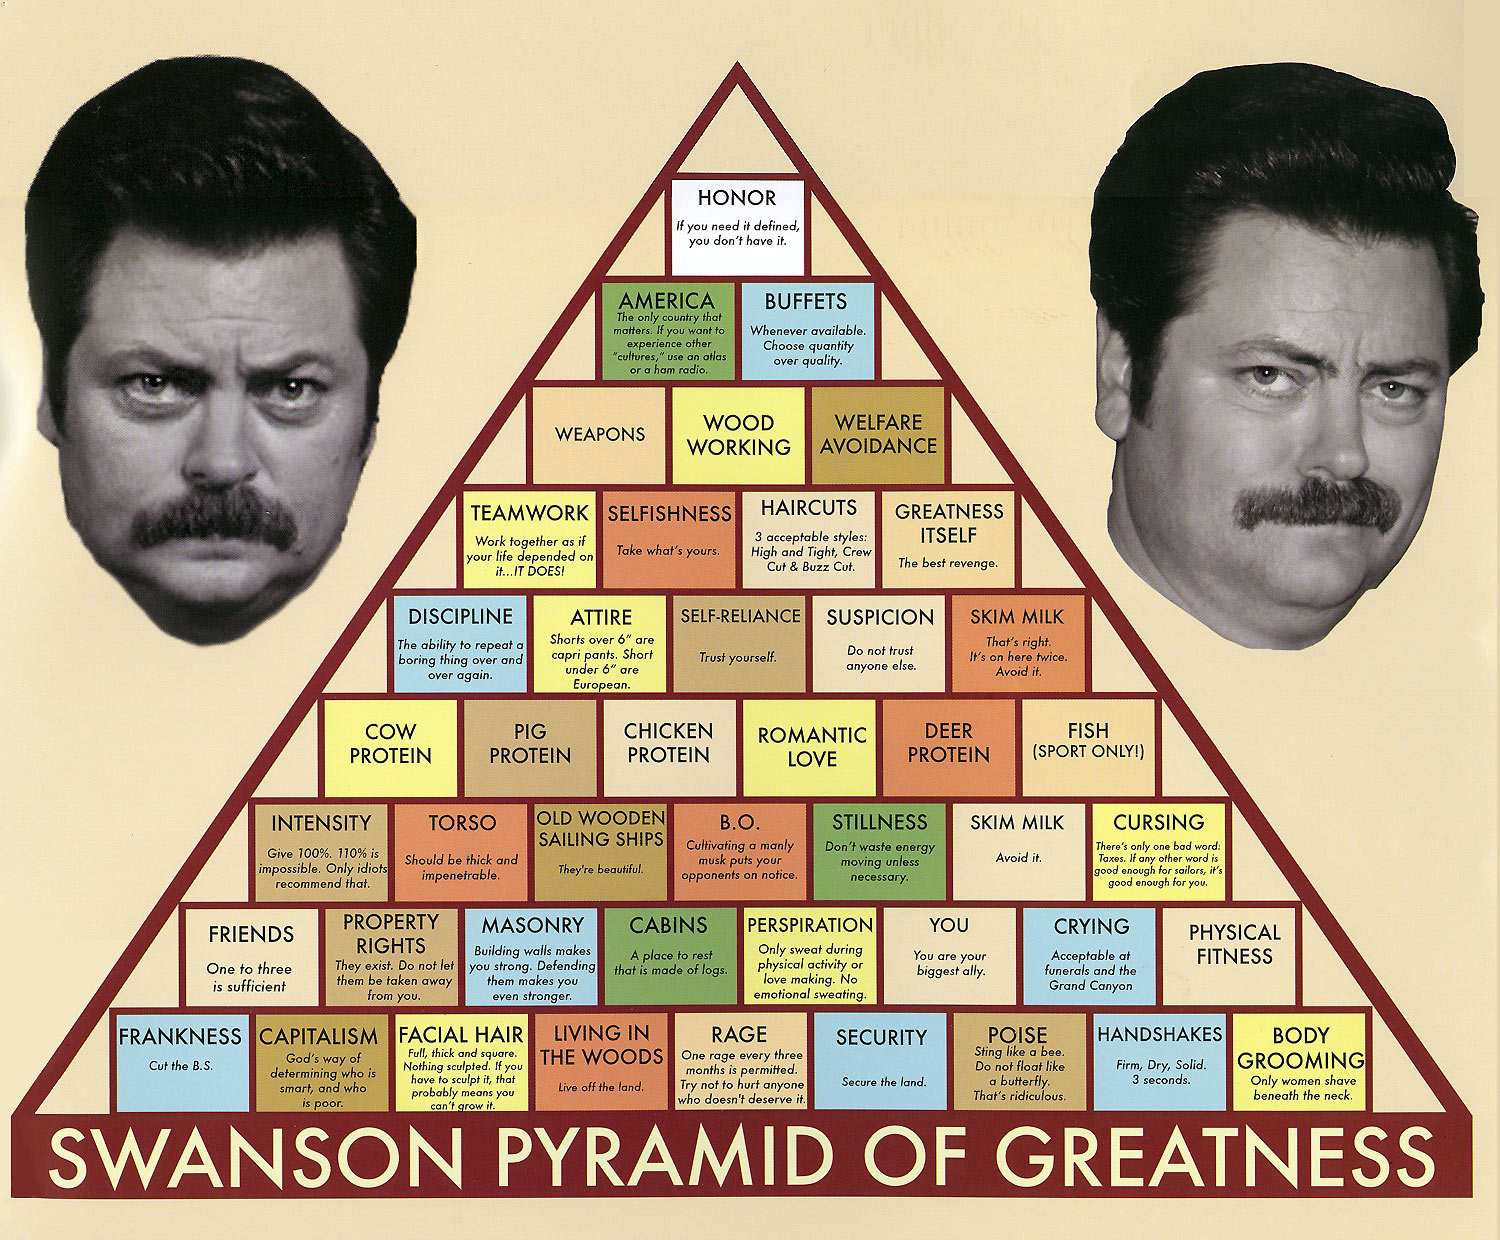 Ron Swansons Pyramid of Greatness